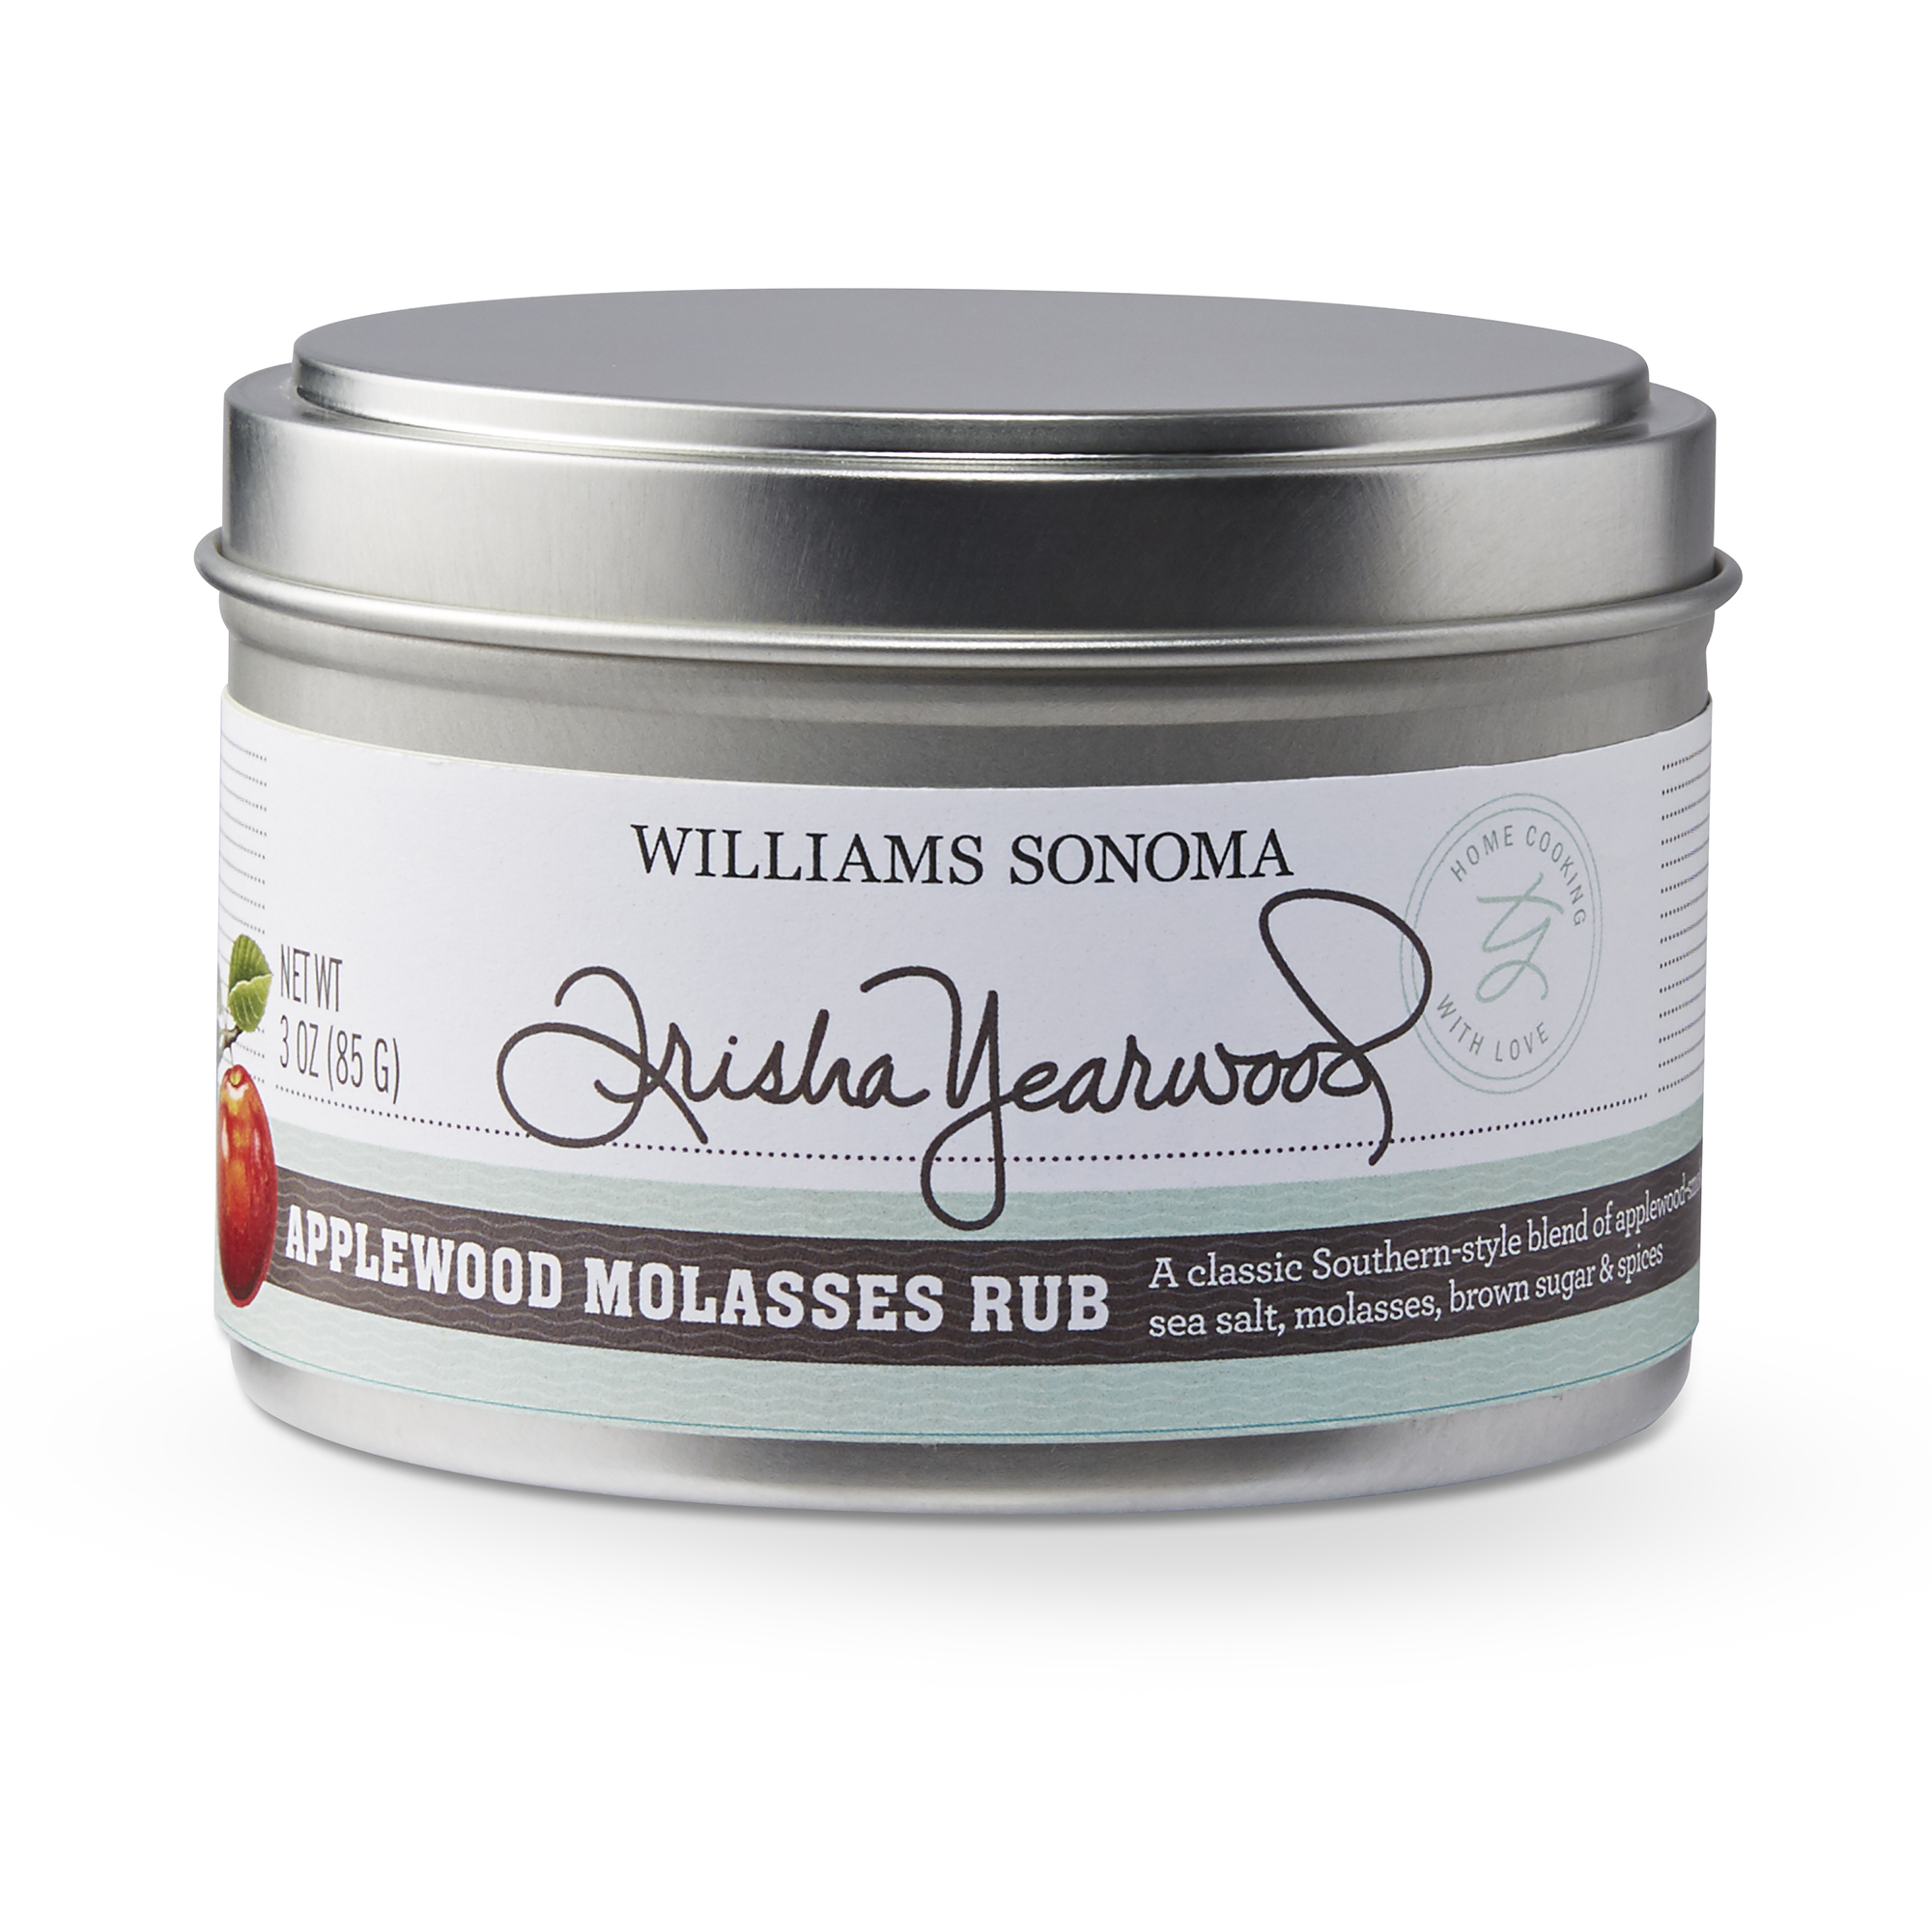 Williams Sonoma and Trisha's Kitchen Applewood Molasses Rub (Photo: Business Wire)